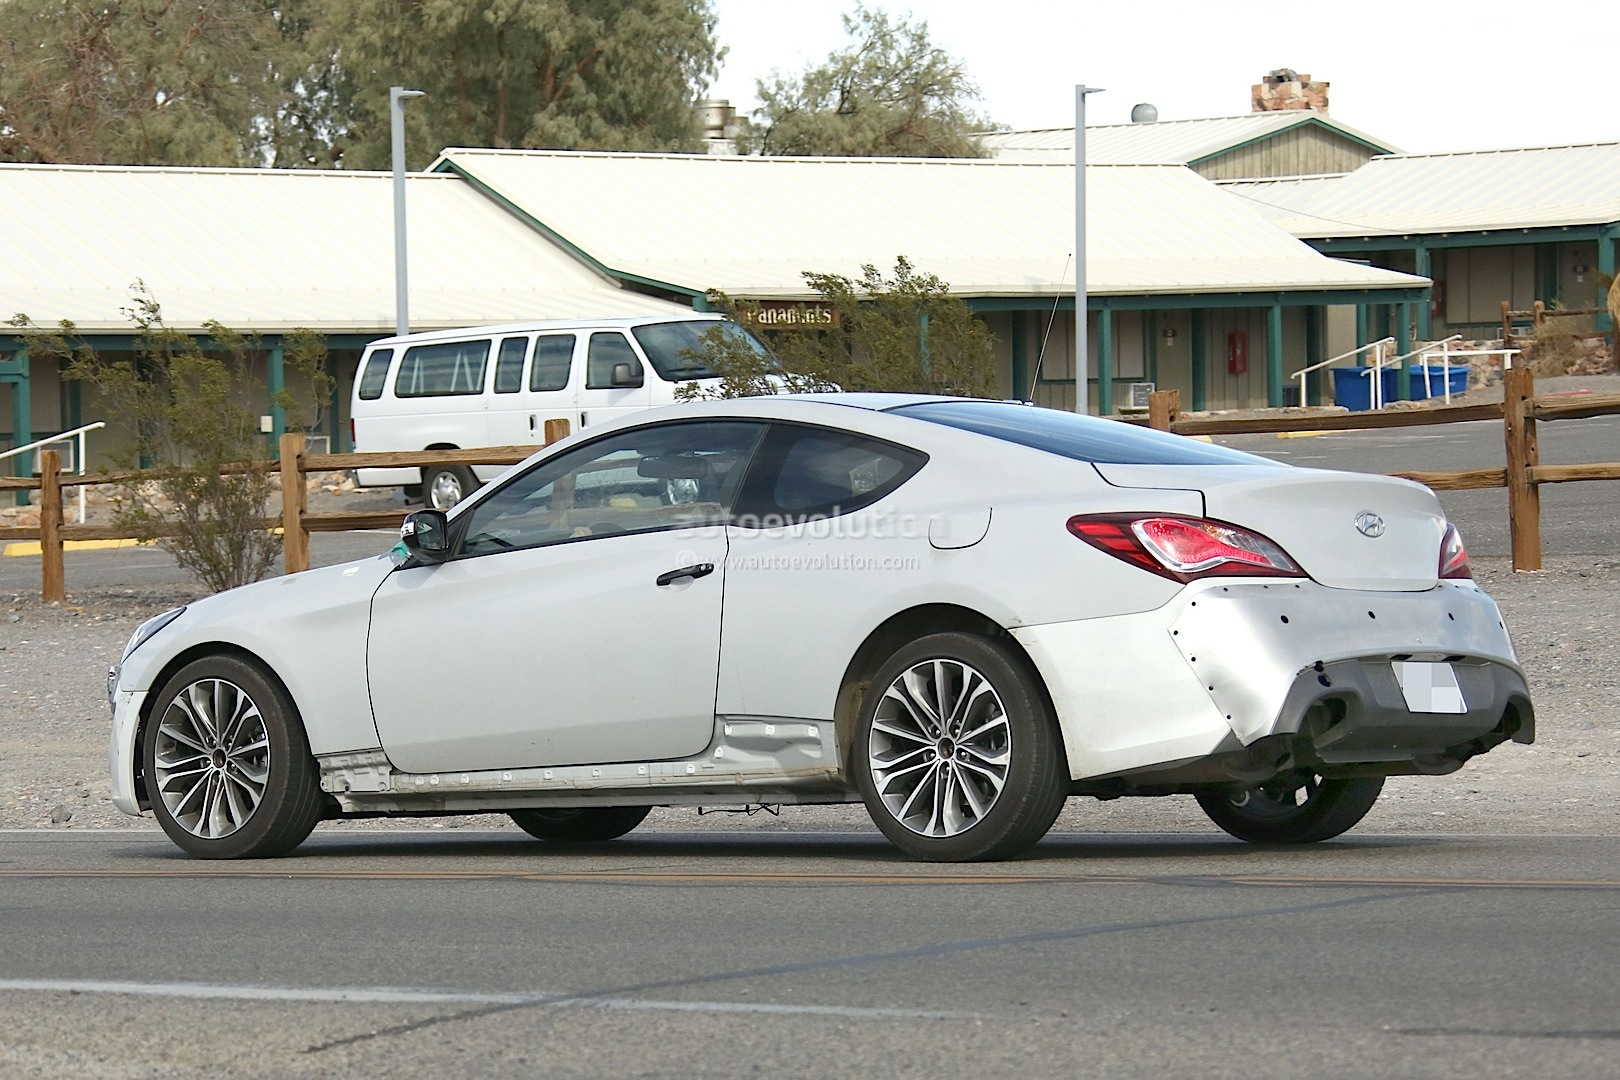 New 2017 Hyundai Genesis Coupe Spied for the First Time ...